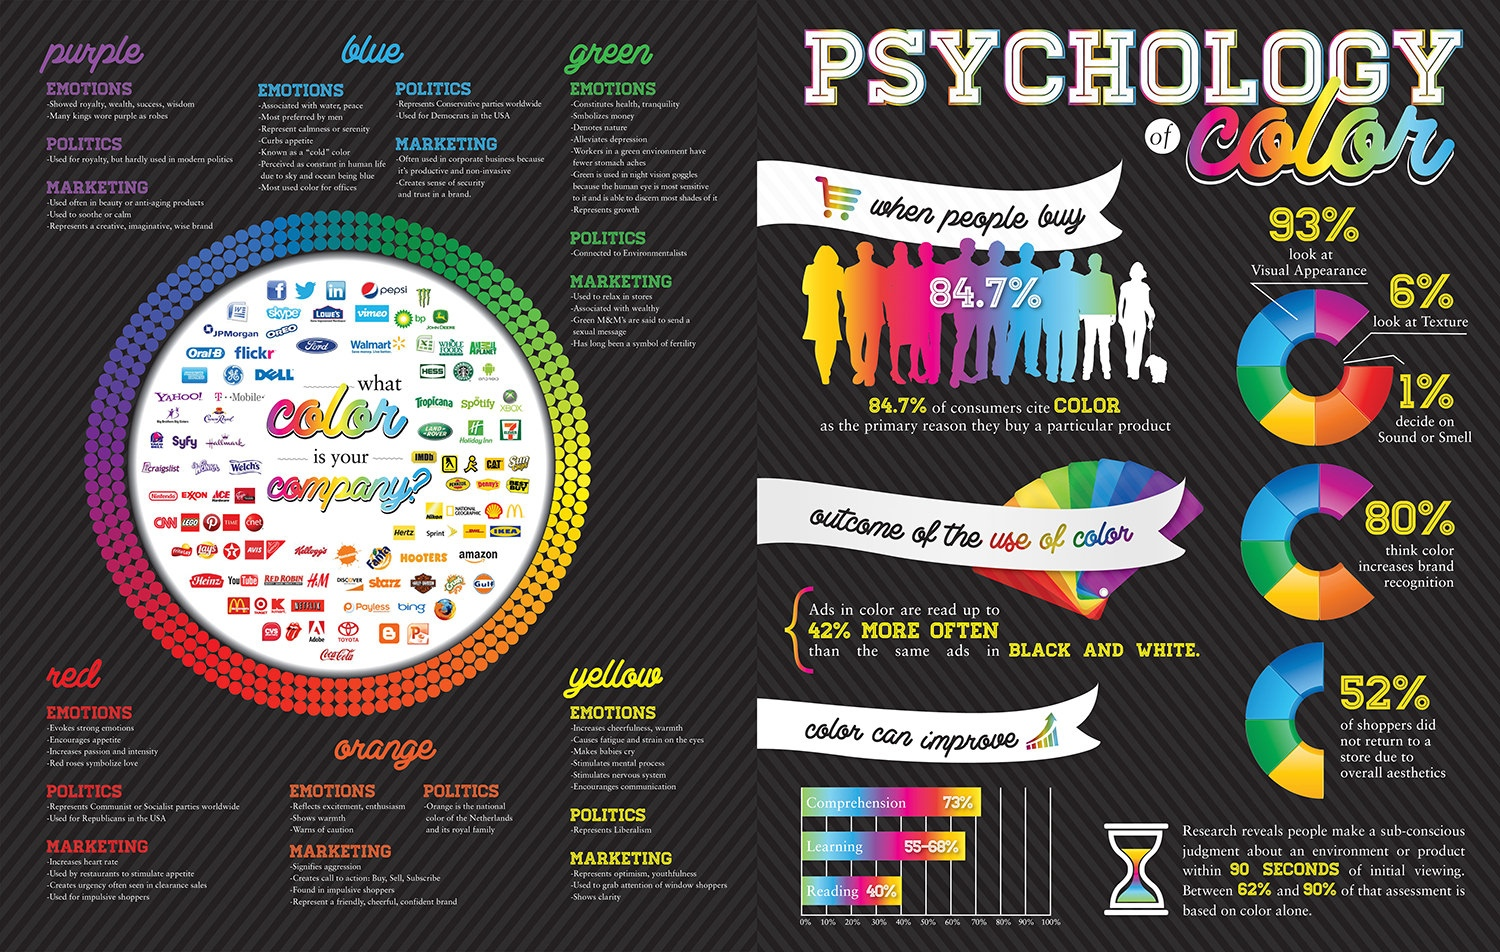 PSYCHOLOGY OF COLOR info graphic